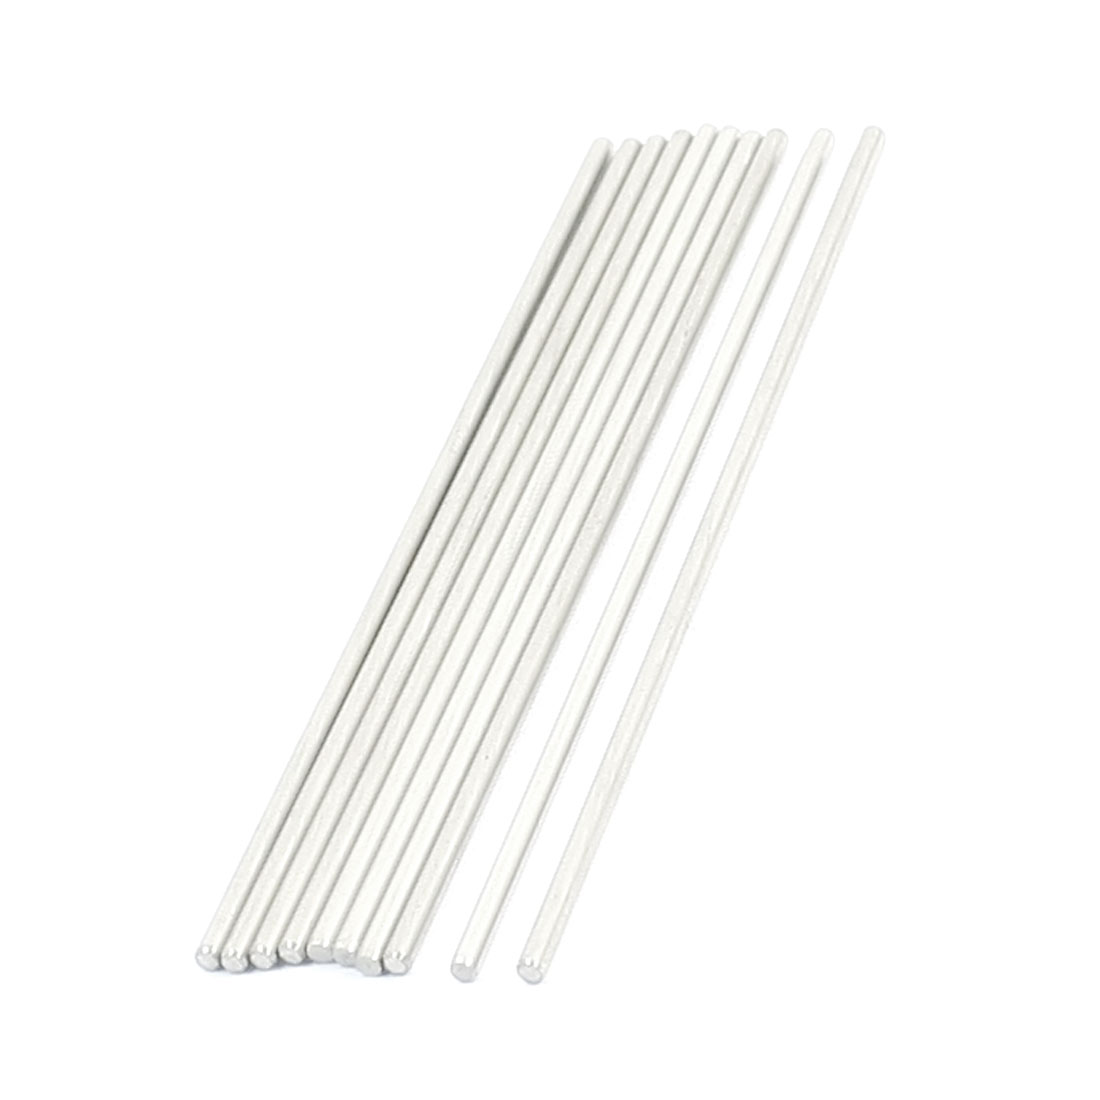 10Pcs 90 x 2mm Hardware Tools Stainless Steel Round Rods for Car Model